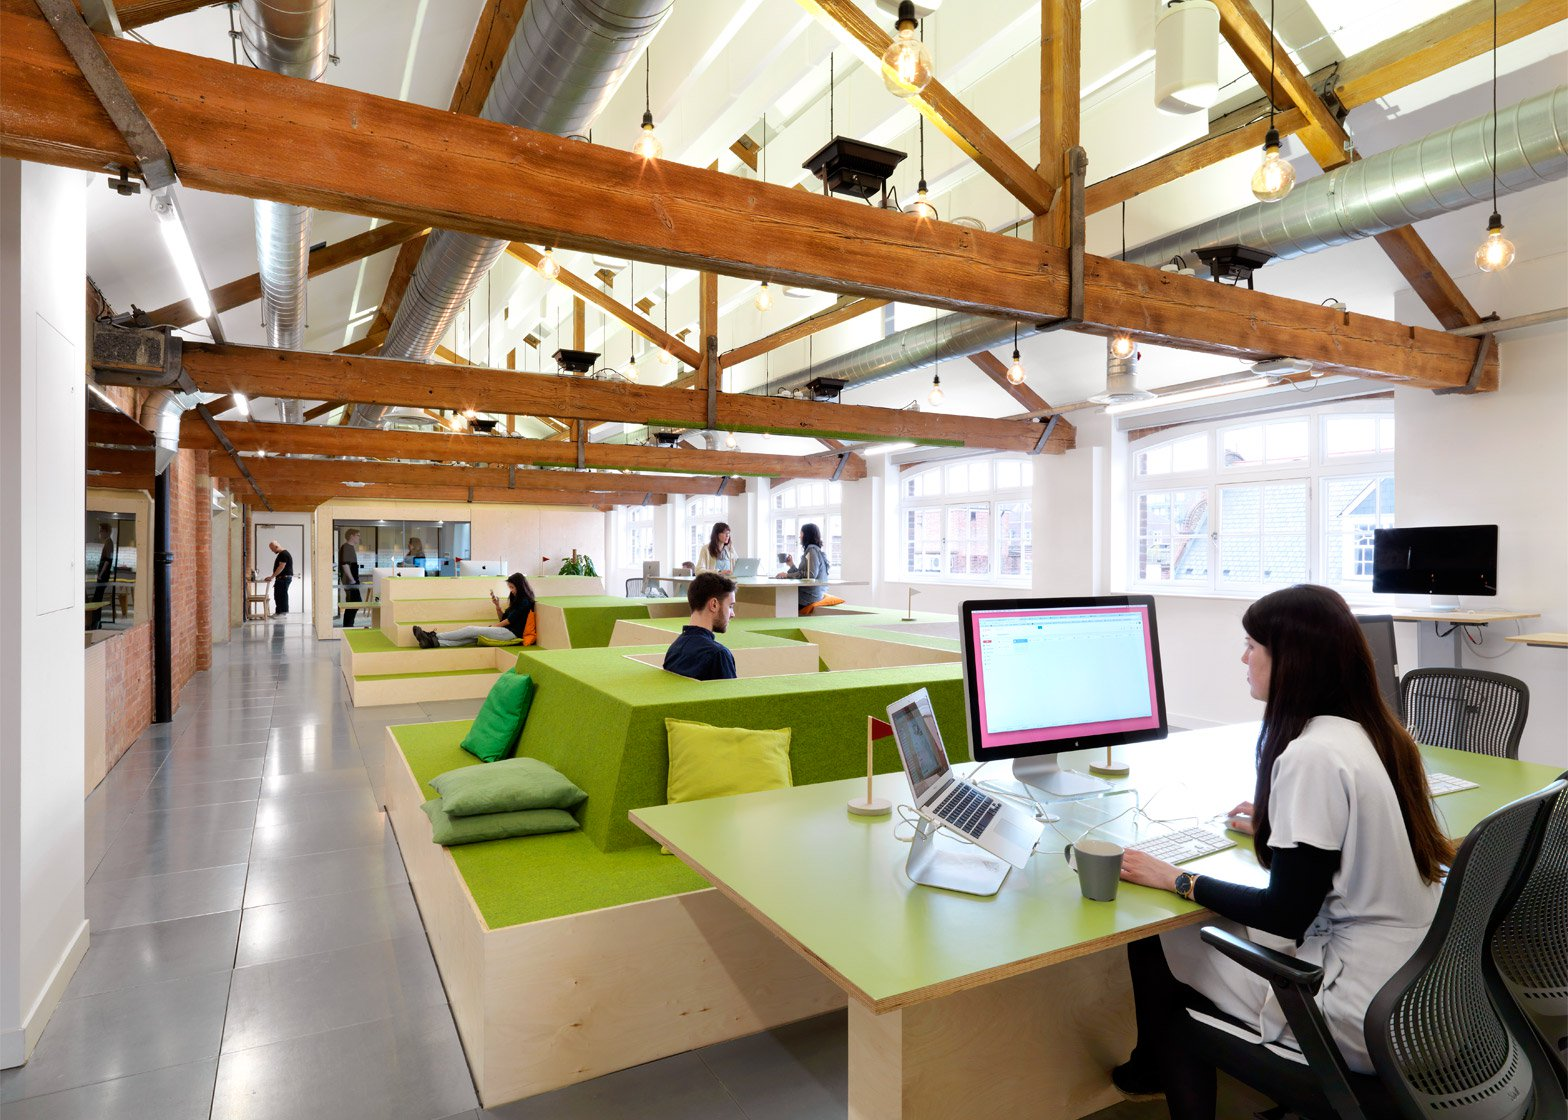 open office concepts. Open Office Concepts. Concept. Photo Credit: Dezeen Concept Concepts H C